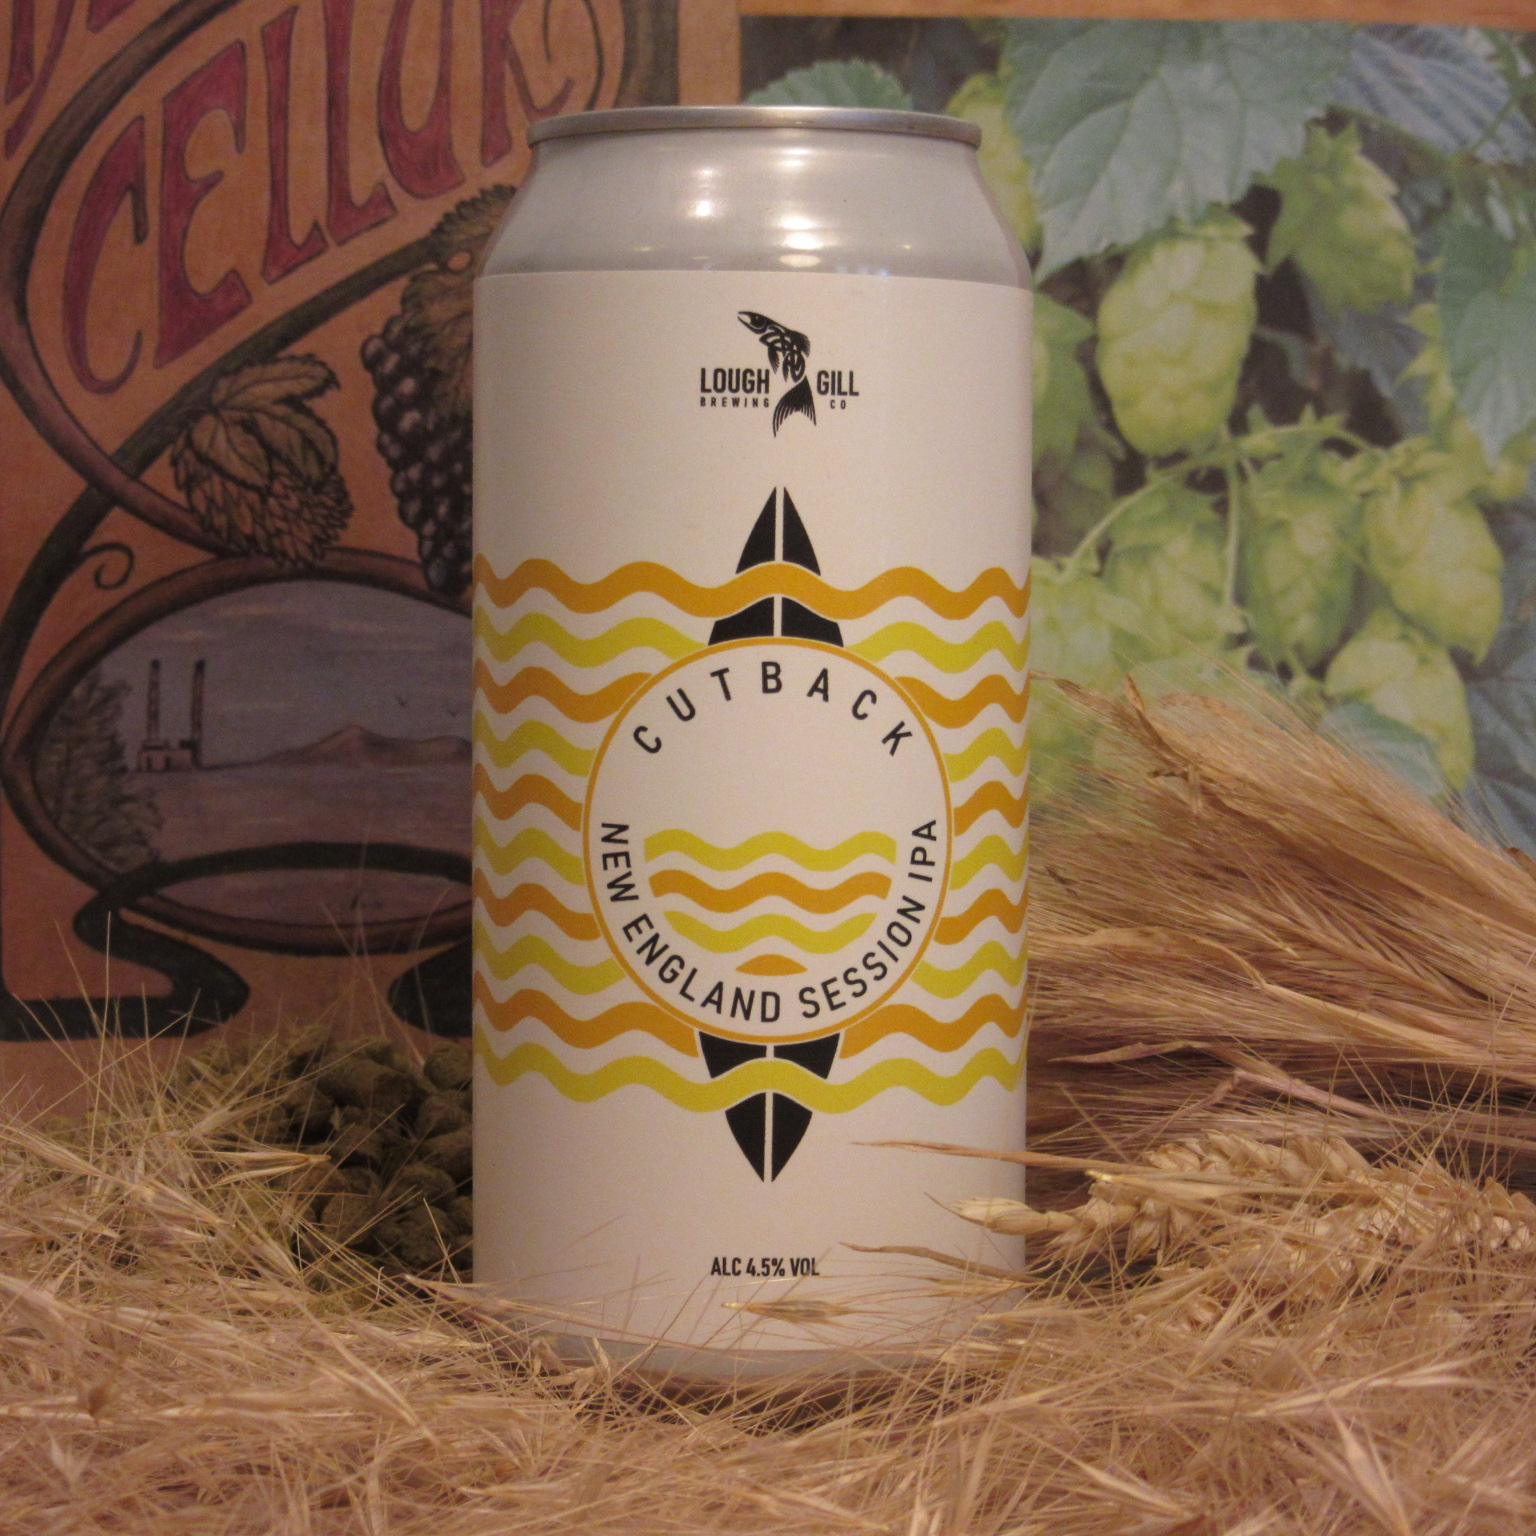 Lough Gill Cutback New England Session IPA